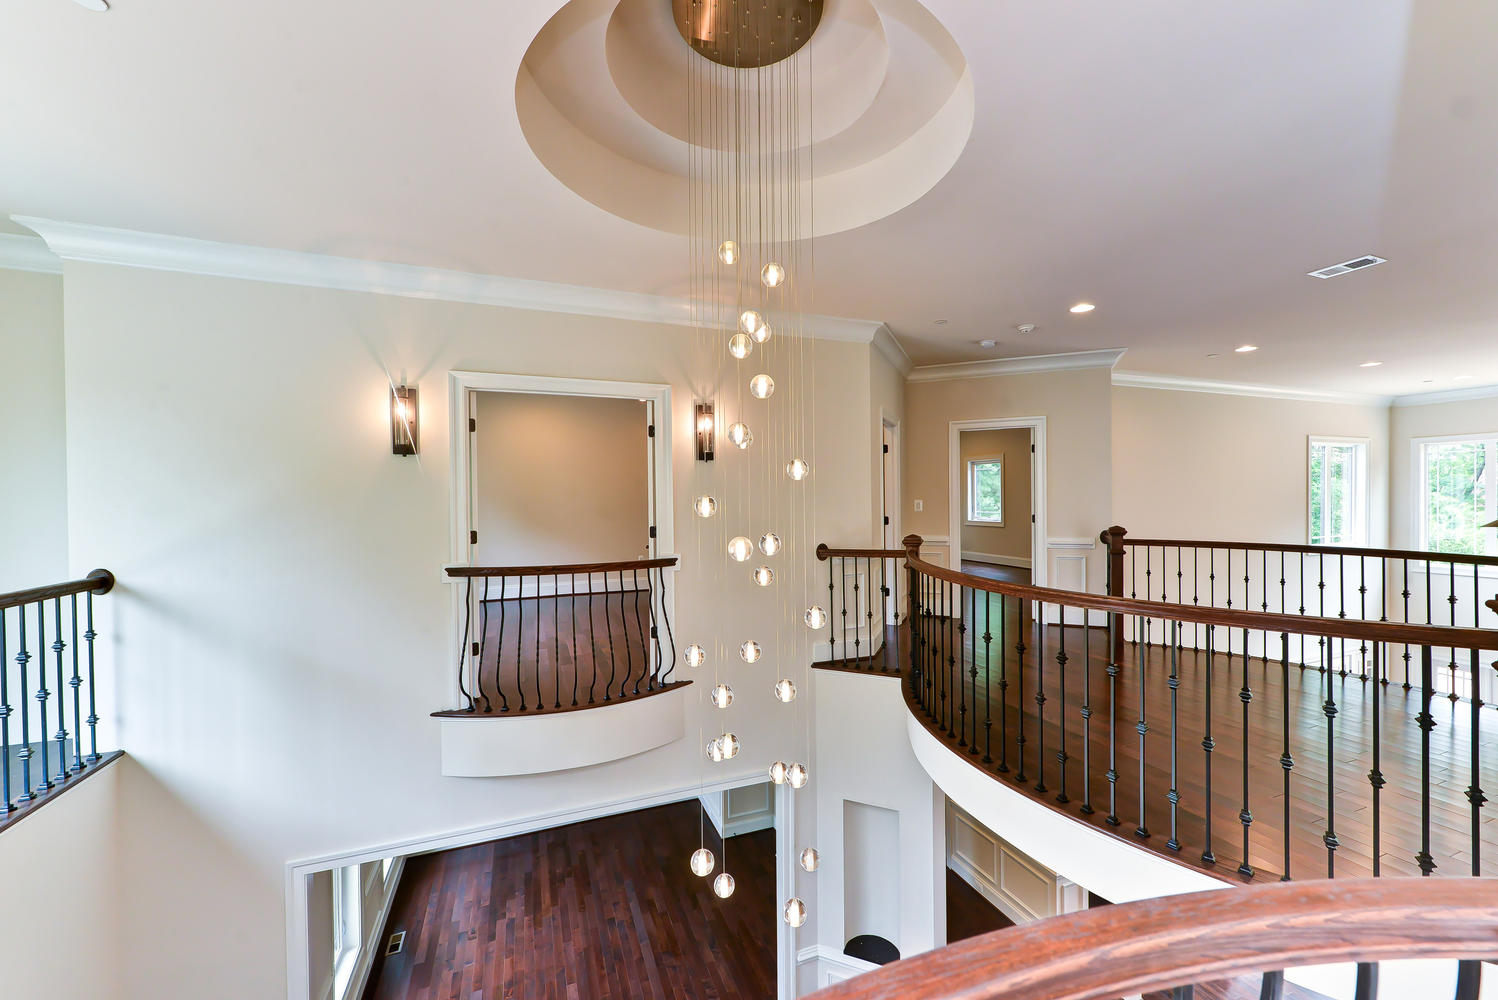 Foyer with elaborate circular tray ceiling, modern chandelier and romeo and juliet balconies